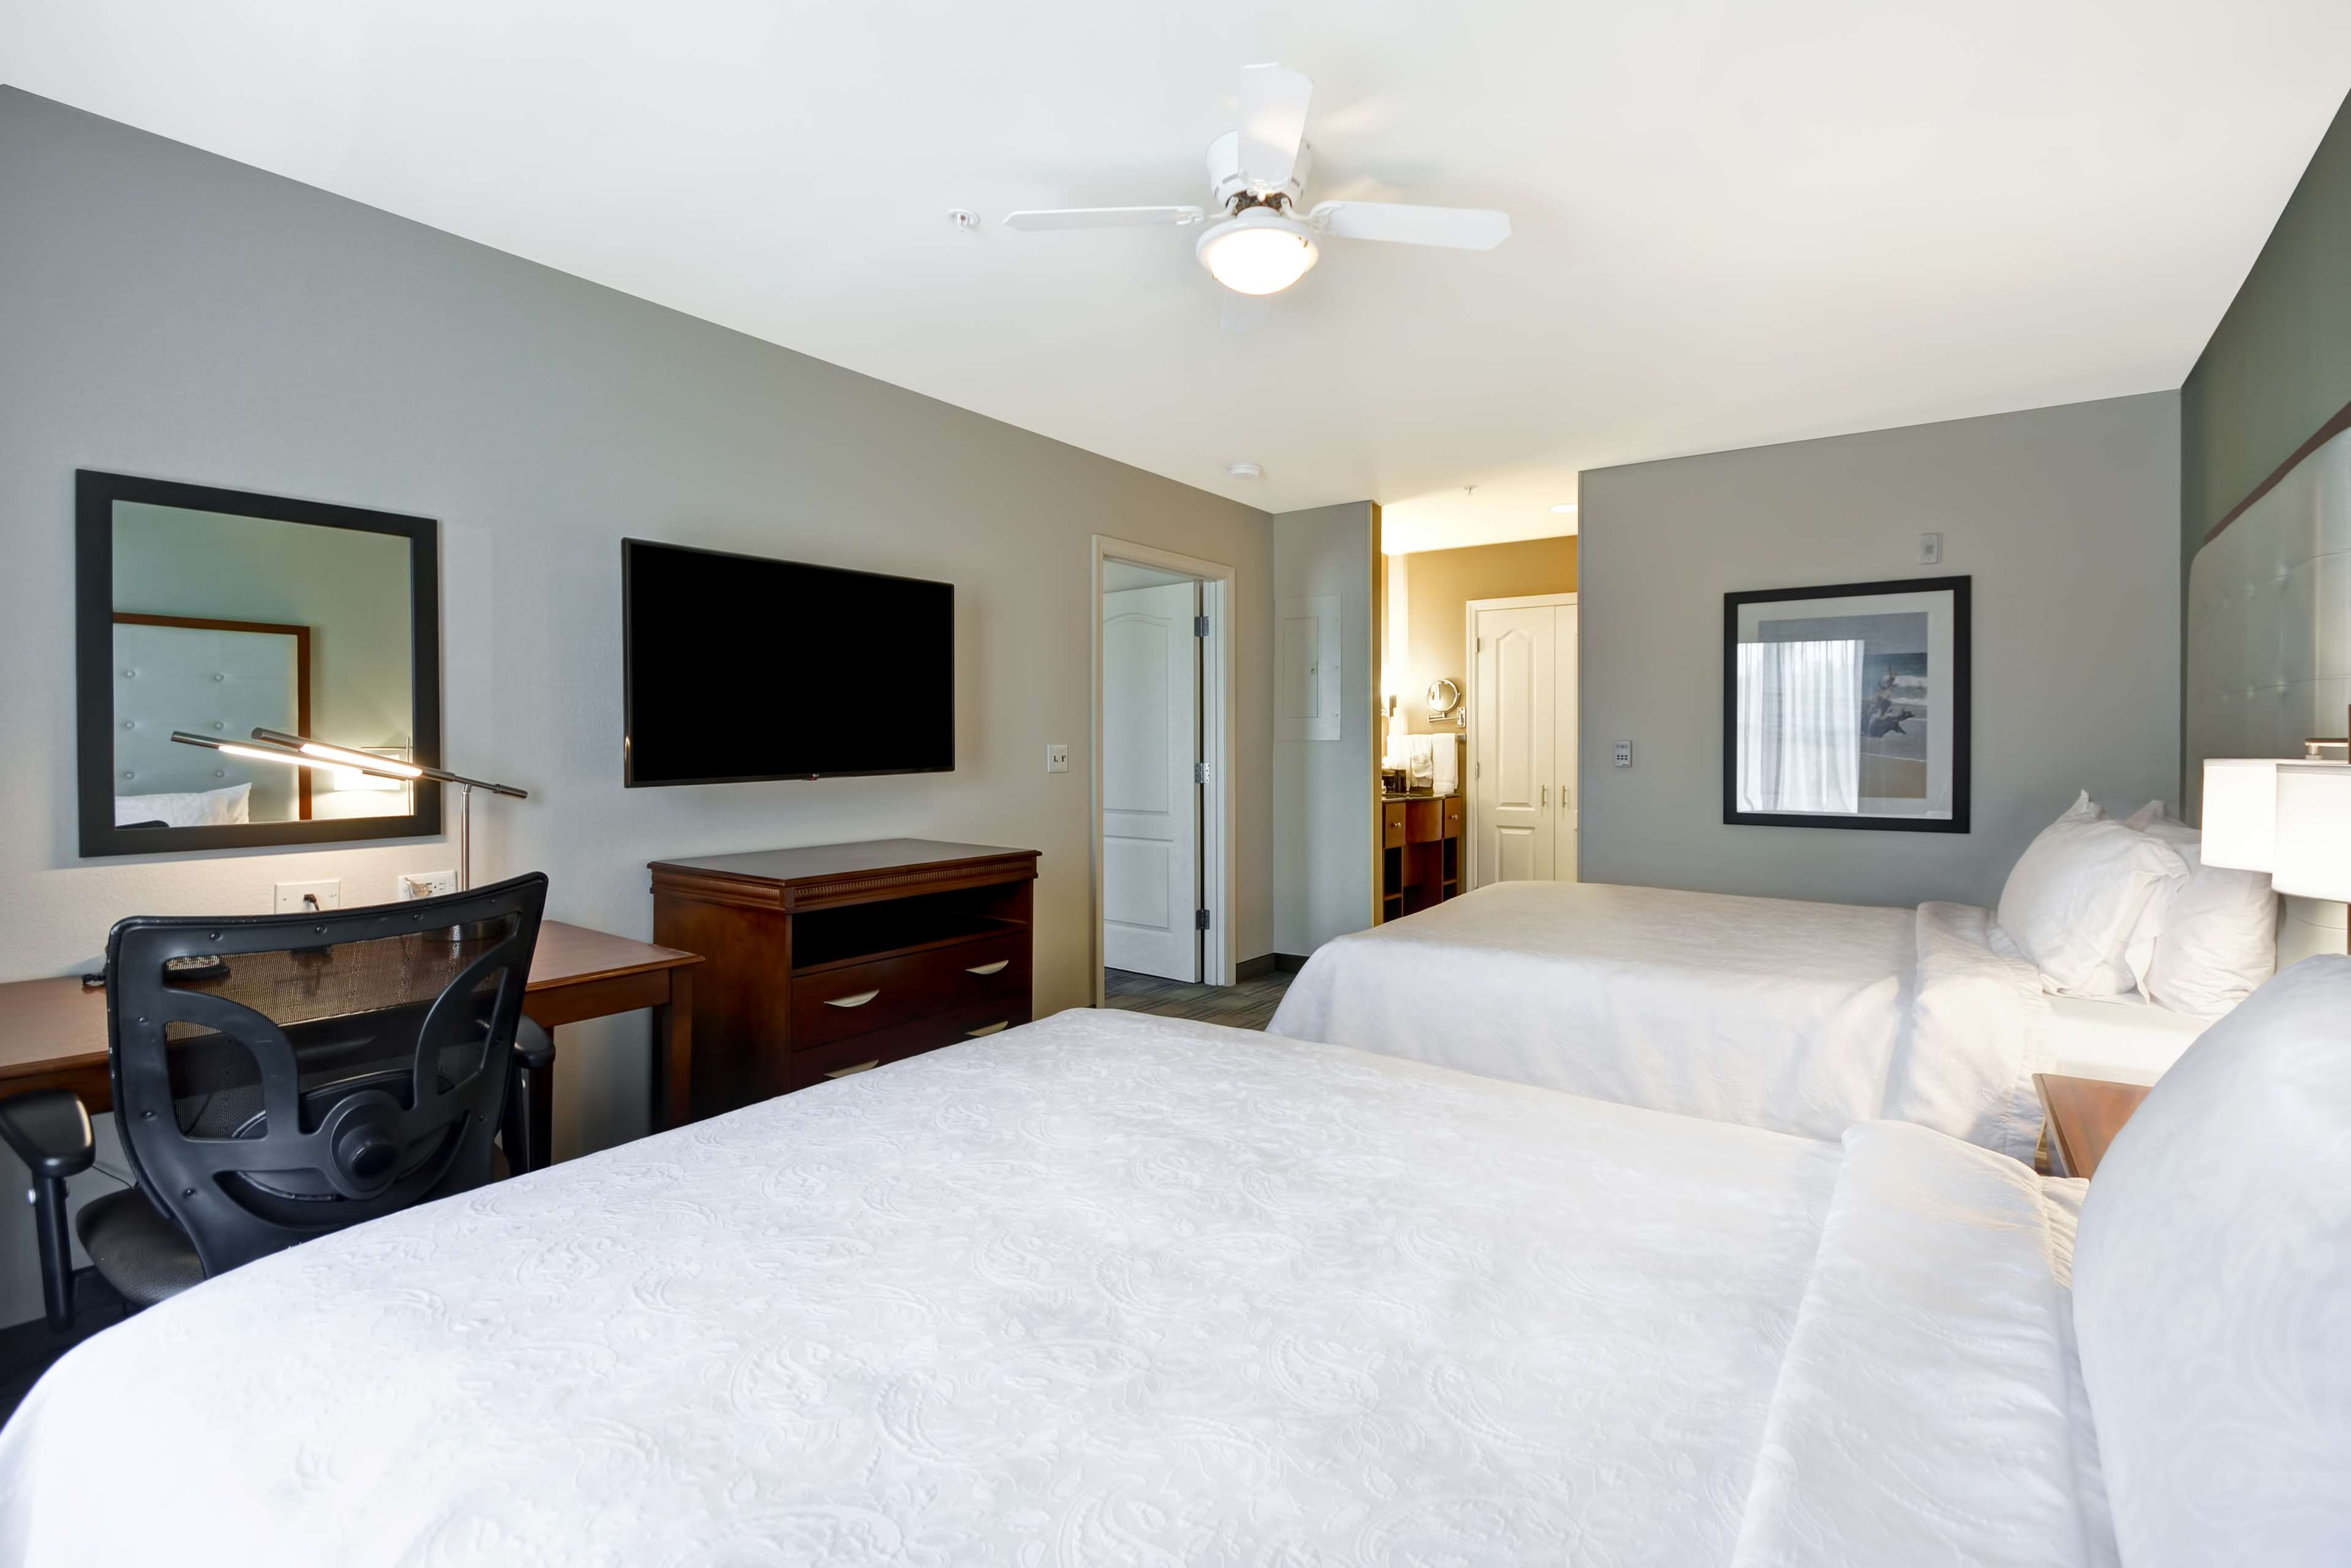 Homewood Suites by Hilton Wilmington/Mayfaire, NC image 16